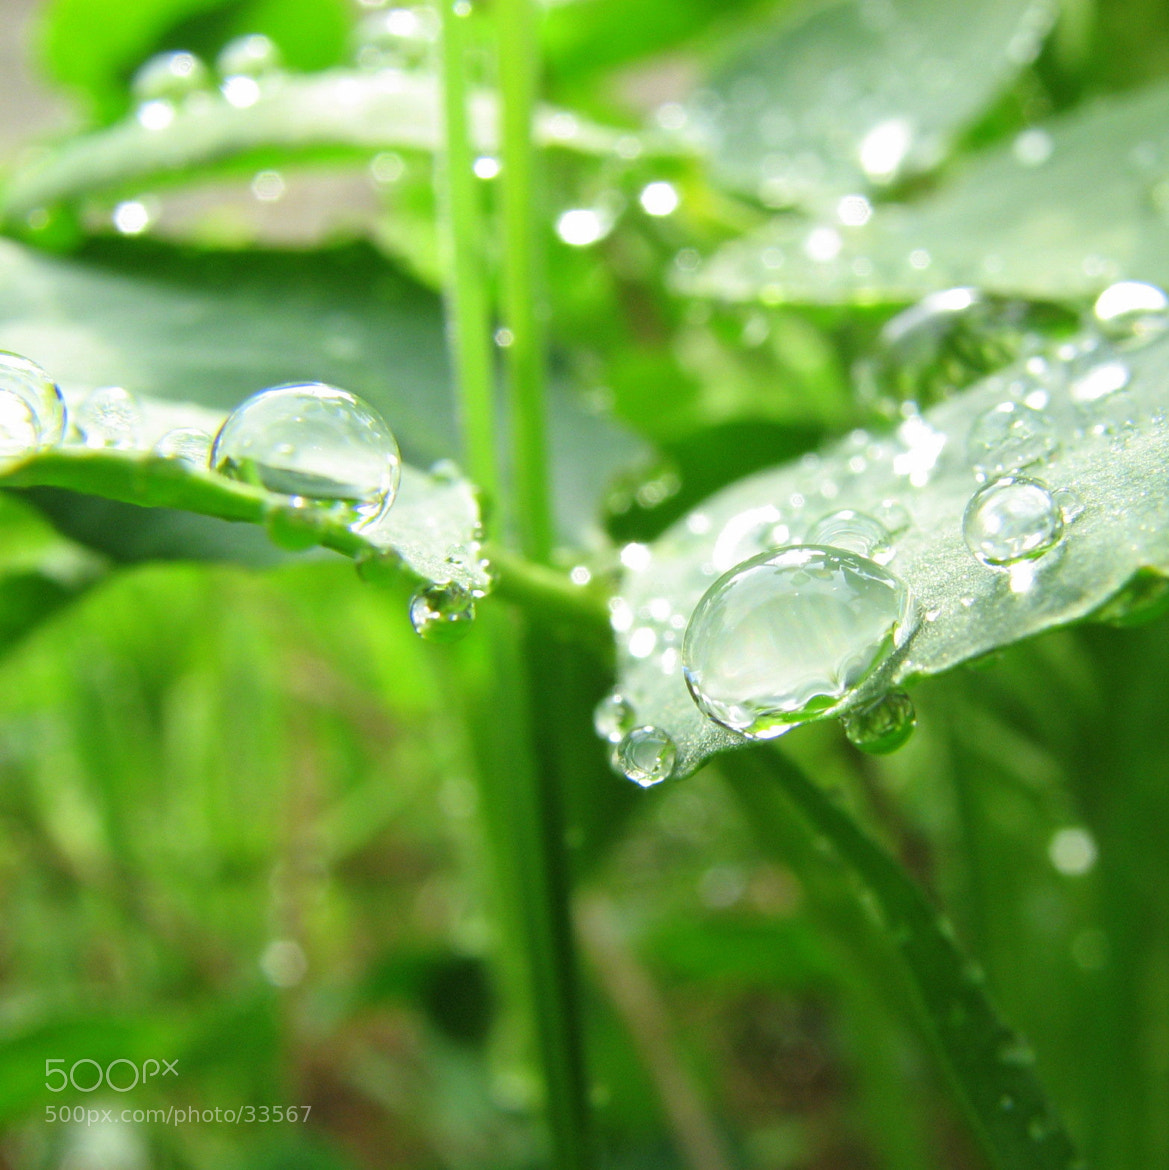 Photograph Капли / Drops  by Go GunSky on 500px